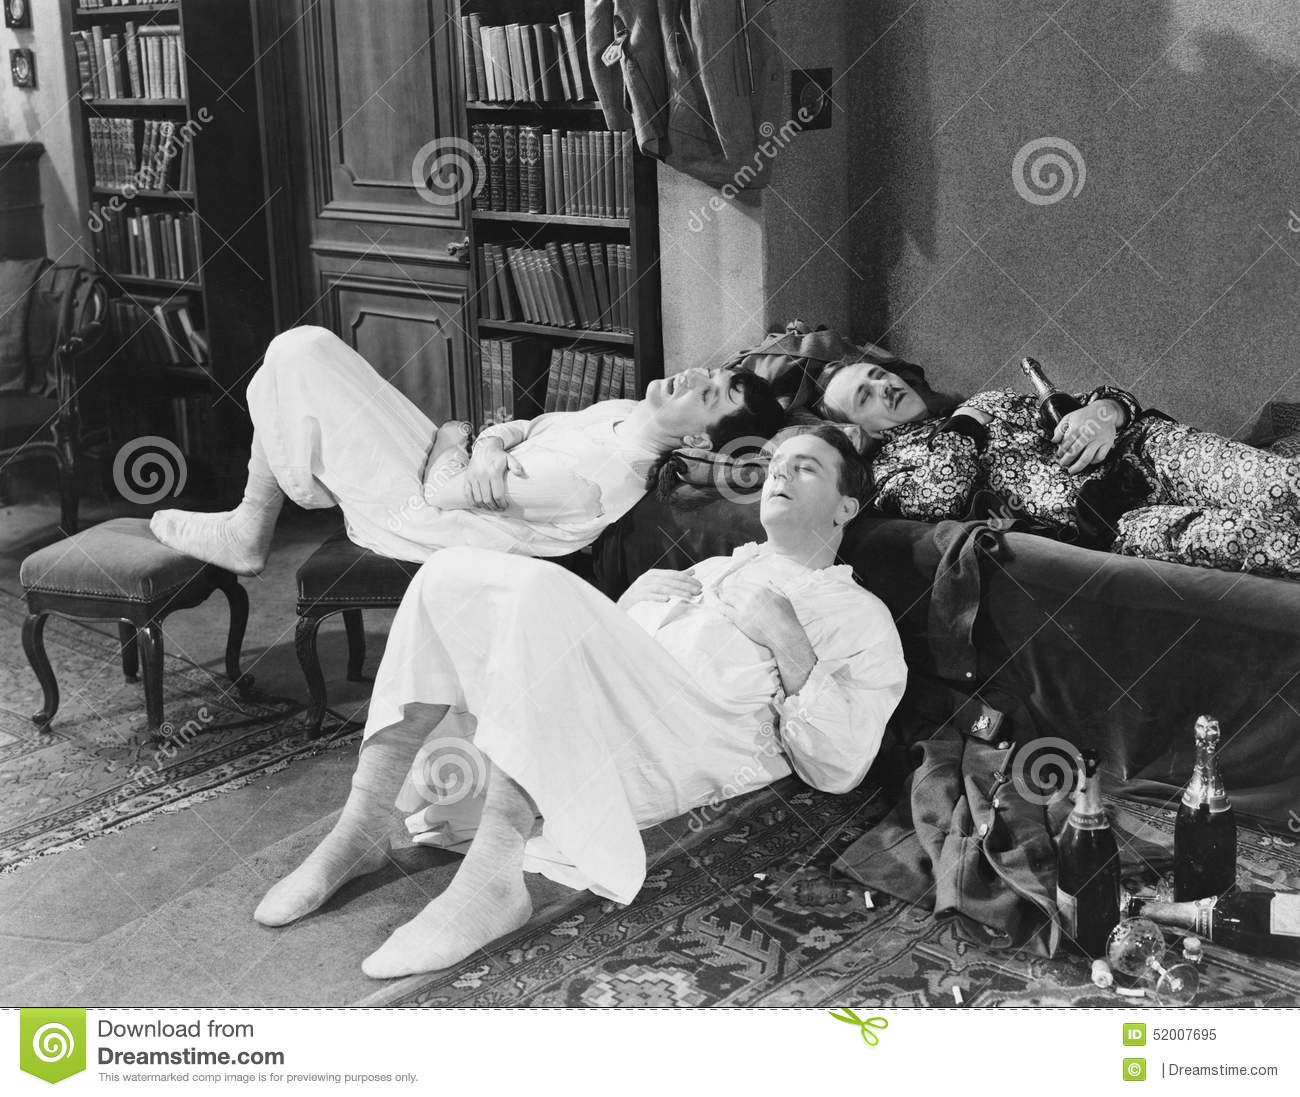 Men passed out with champagne bottles